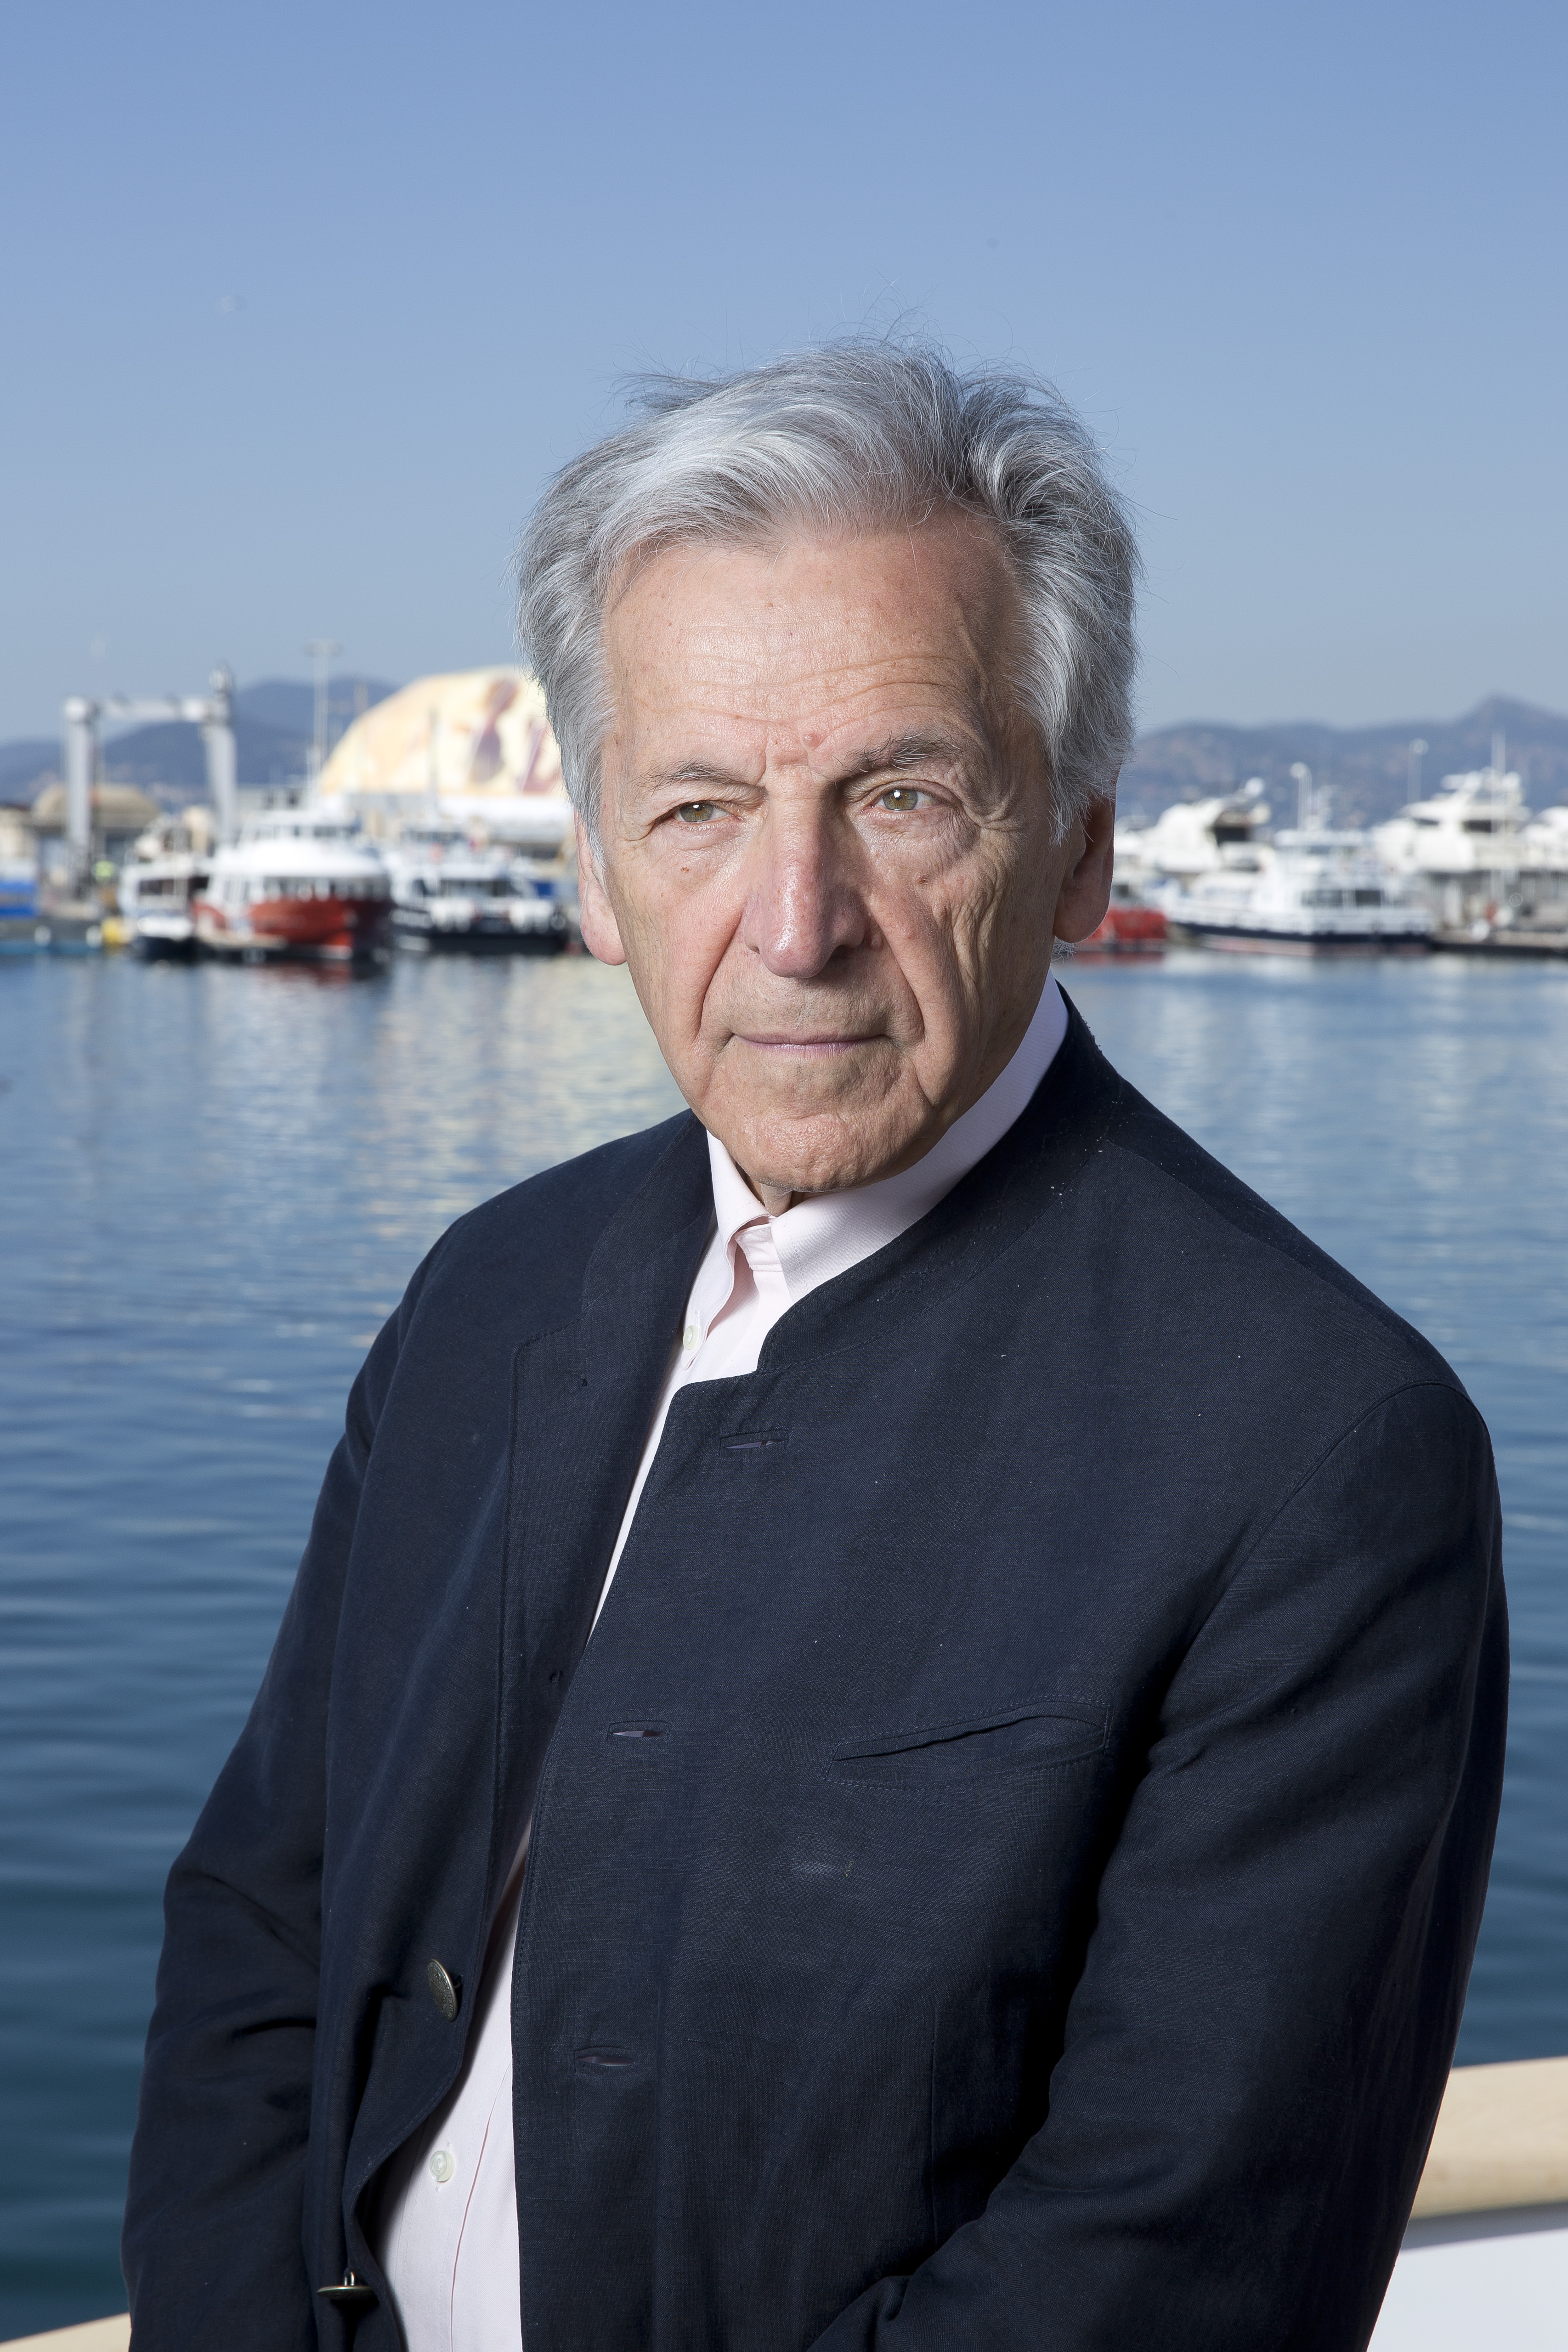 Costa-Gavras par Paul Blind, Cannes 2015